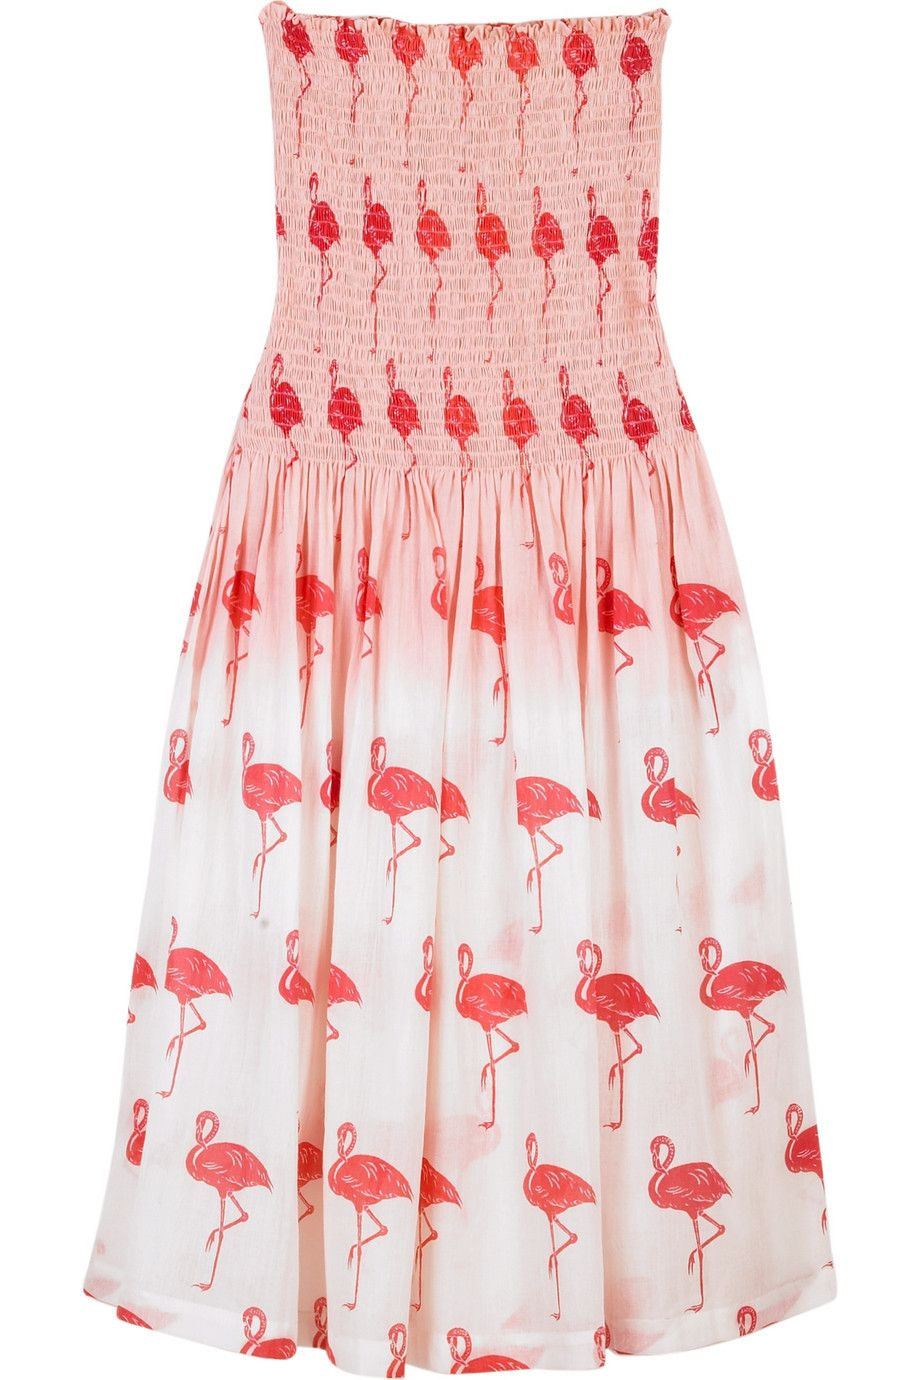 flamingo print dress | b i r d s | Pinterest | Flamingo ...